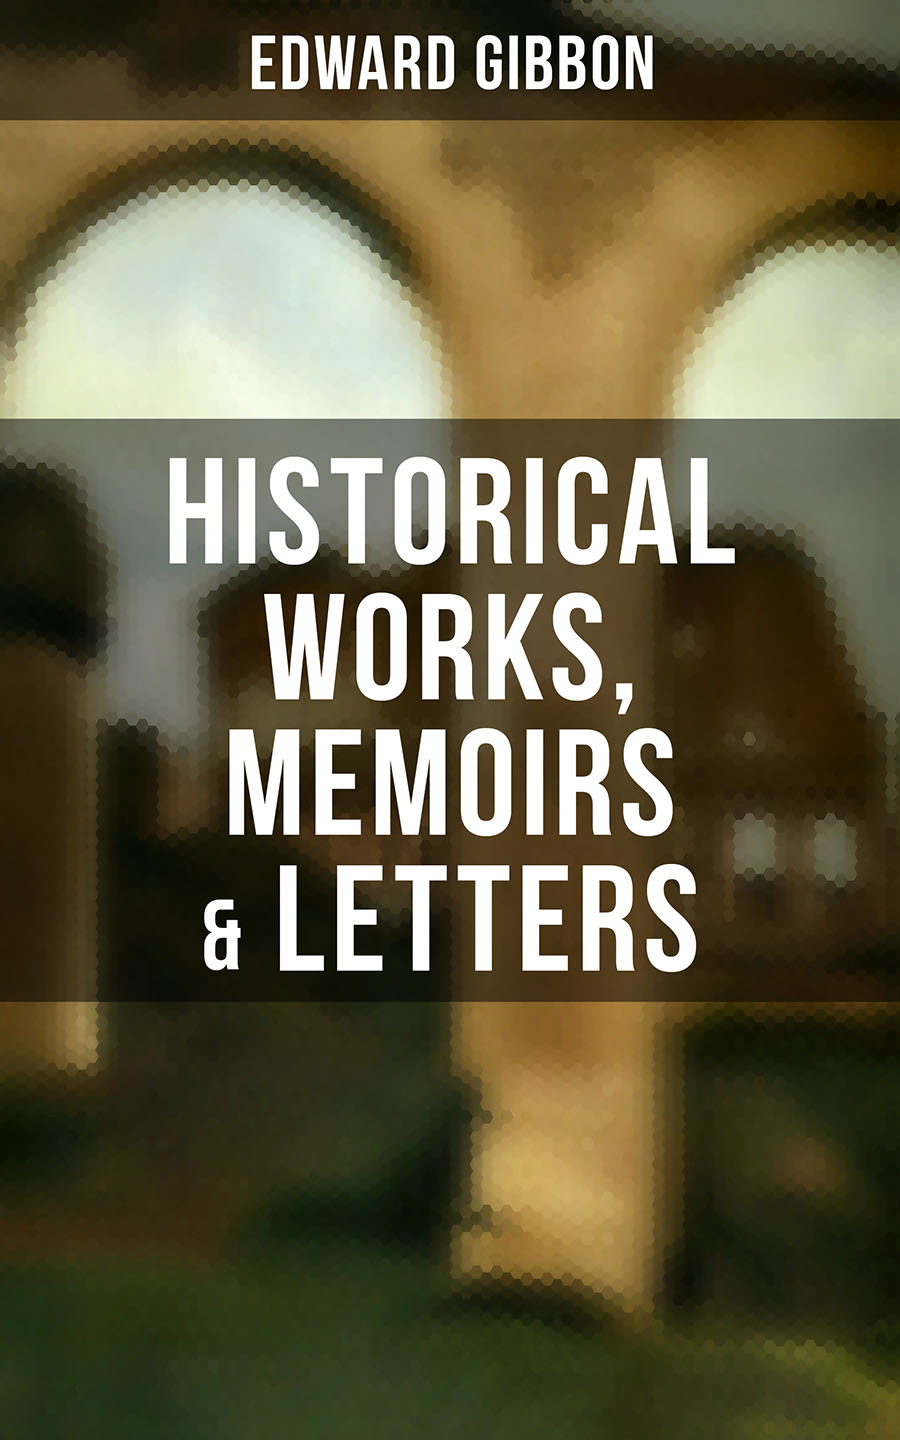 Edward Gibbon EDWARD GIBBON: Historical Works, Memoirs & Letters (Including The History of the Decline and Fall of the Roman Empire) edward chadwick ontarian families genealogies of united empire loyalists and other pioneer families of upper canada